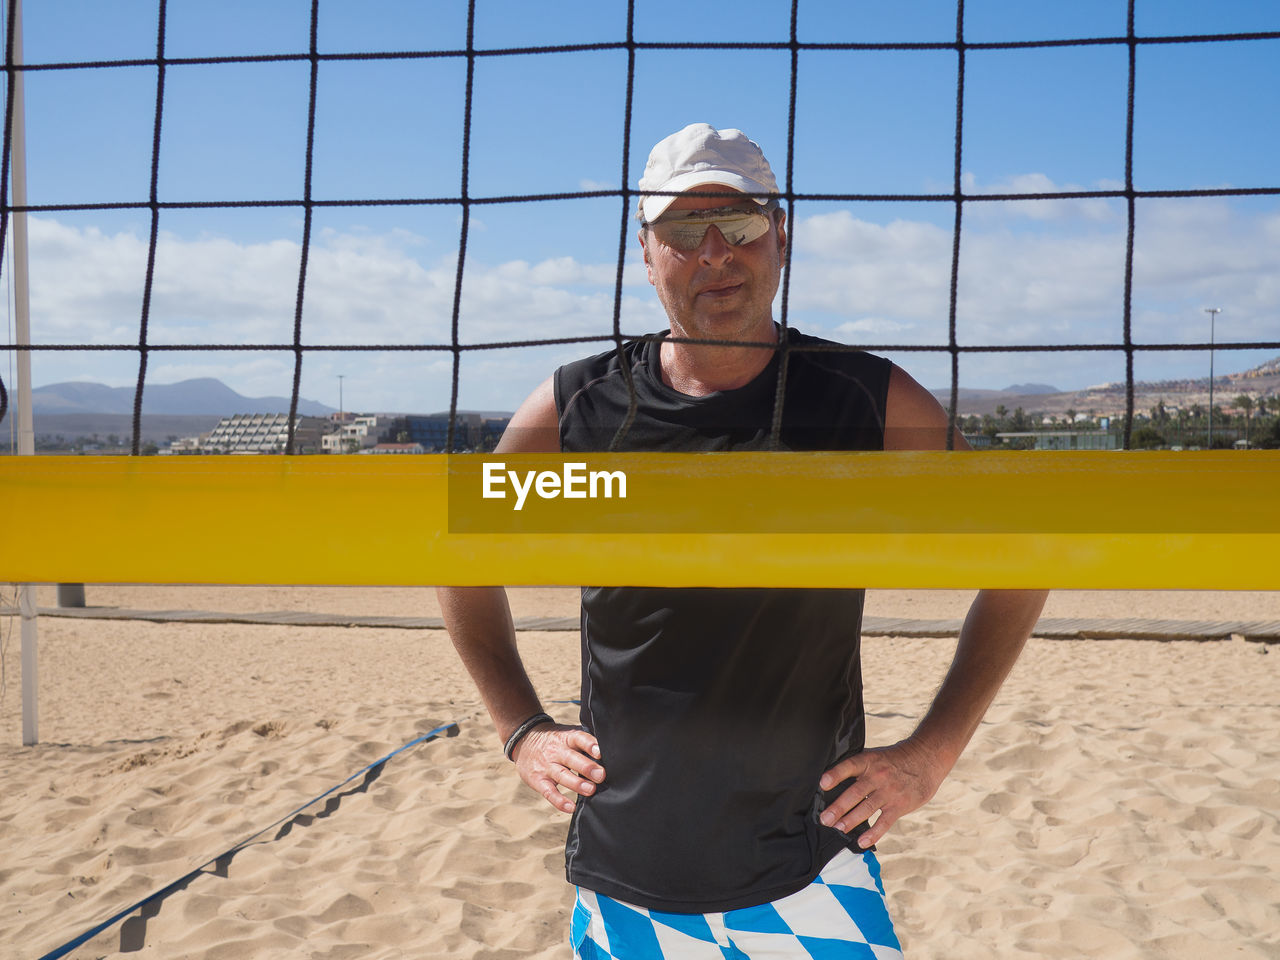 Portrait of man in sunglasses standing by volleyball net against sky